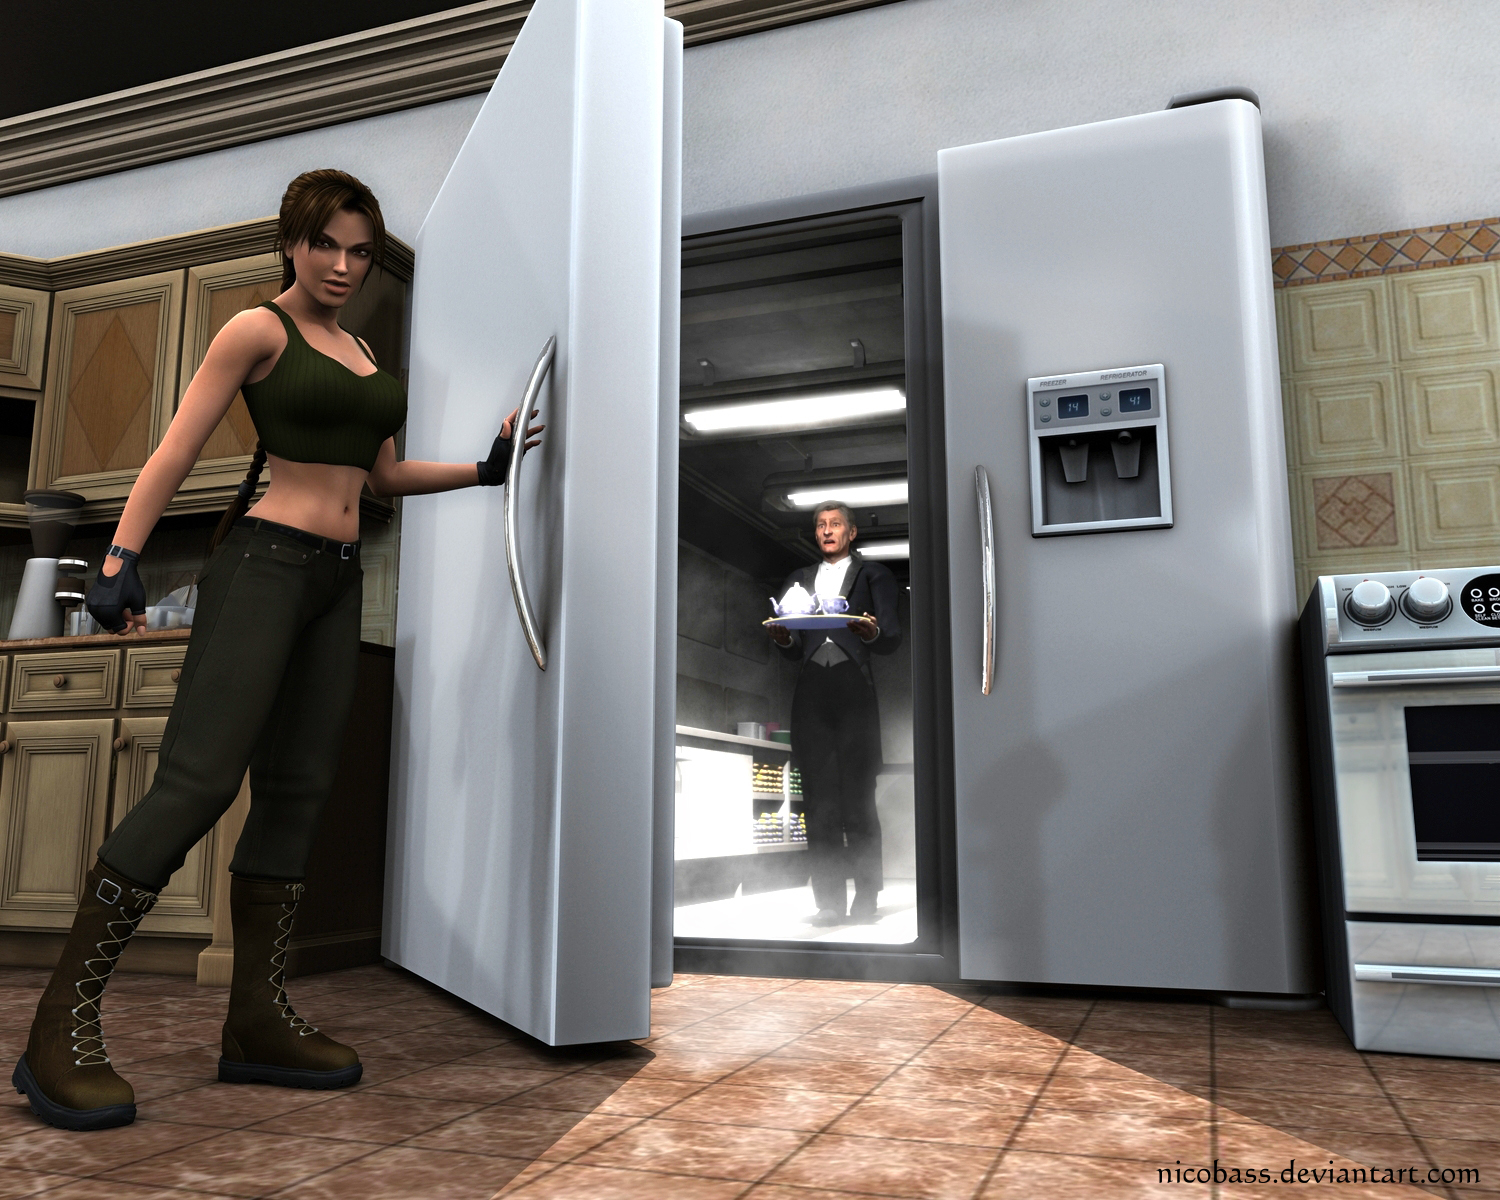 Media Classic And Trilogy Tomb Raider Games Archive Sideshow